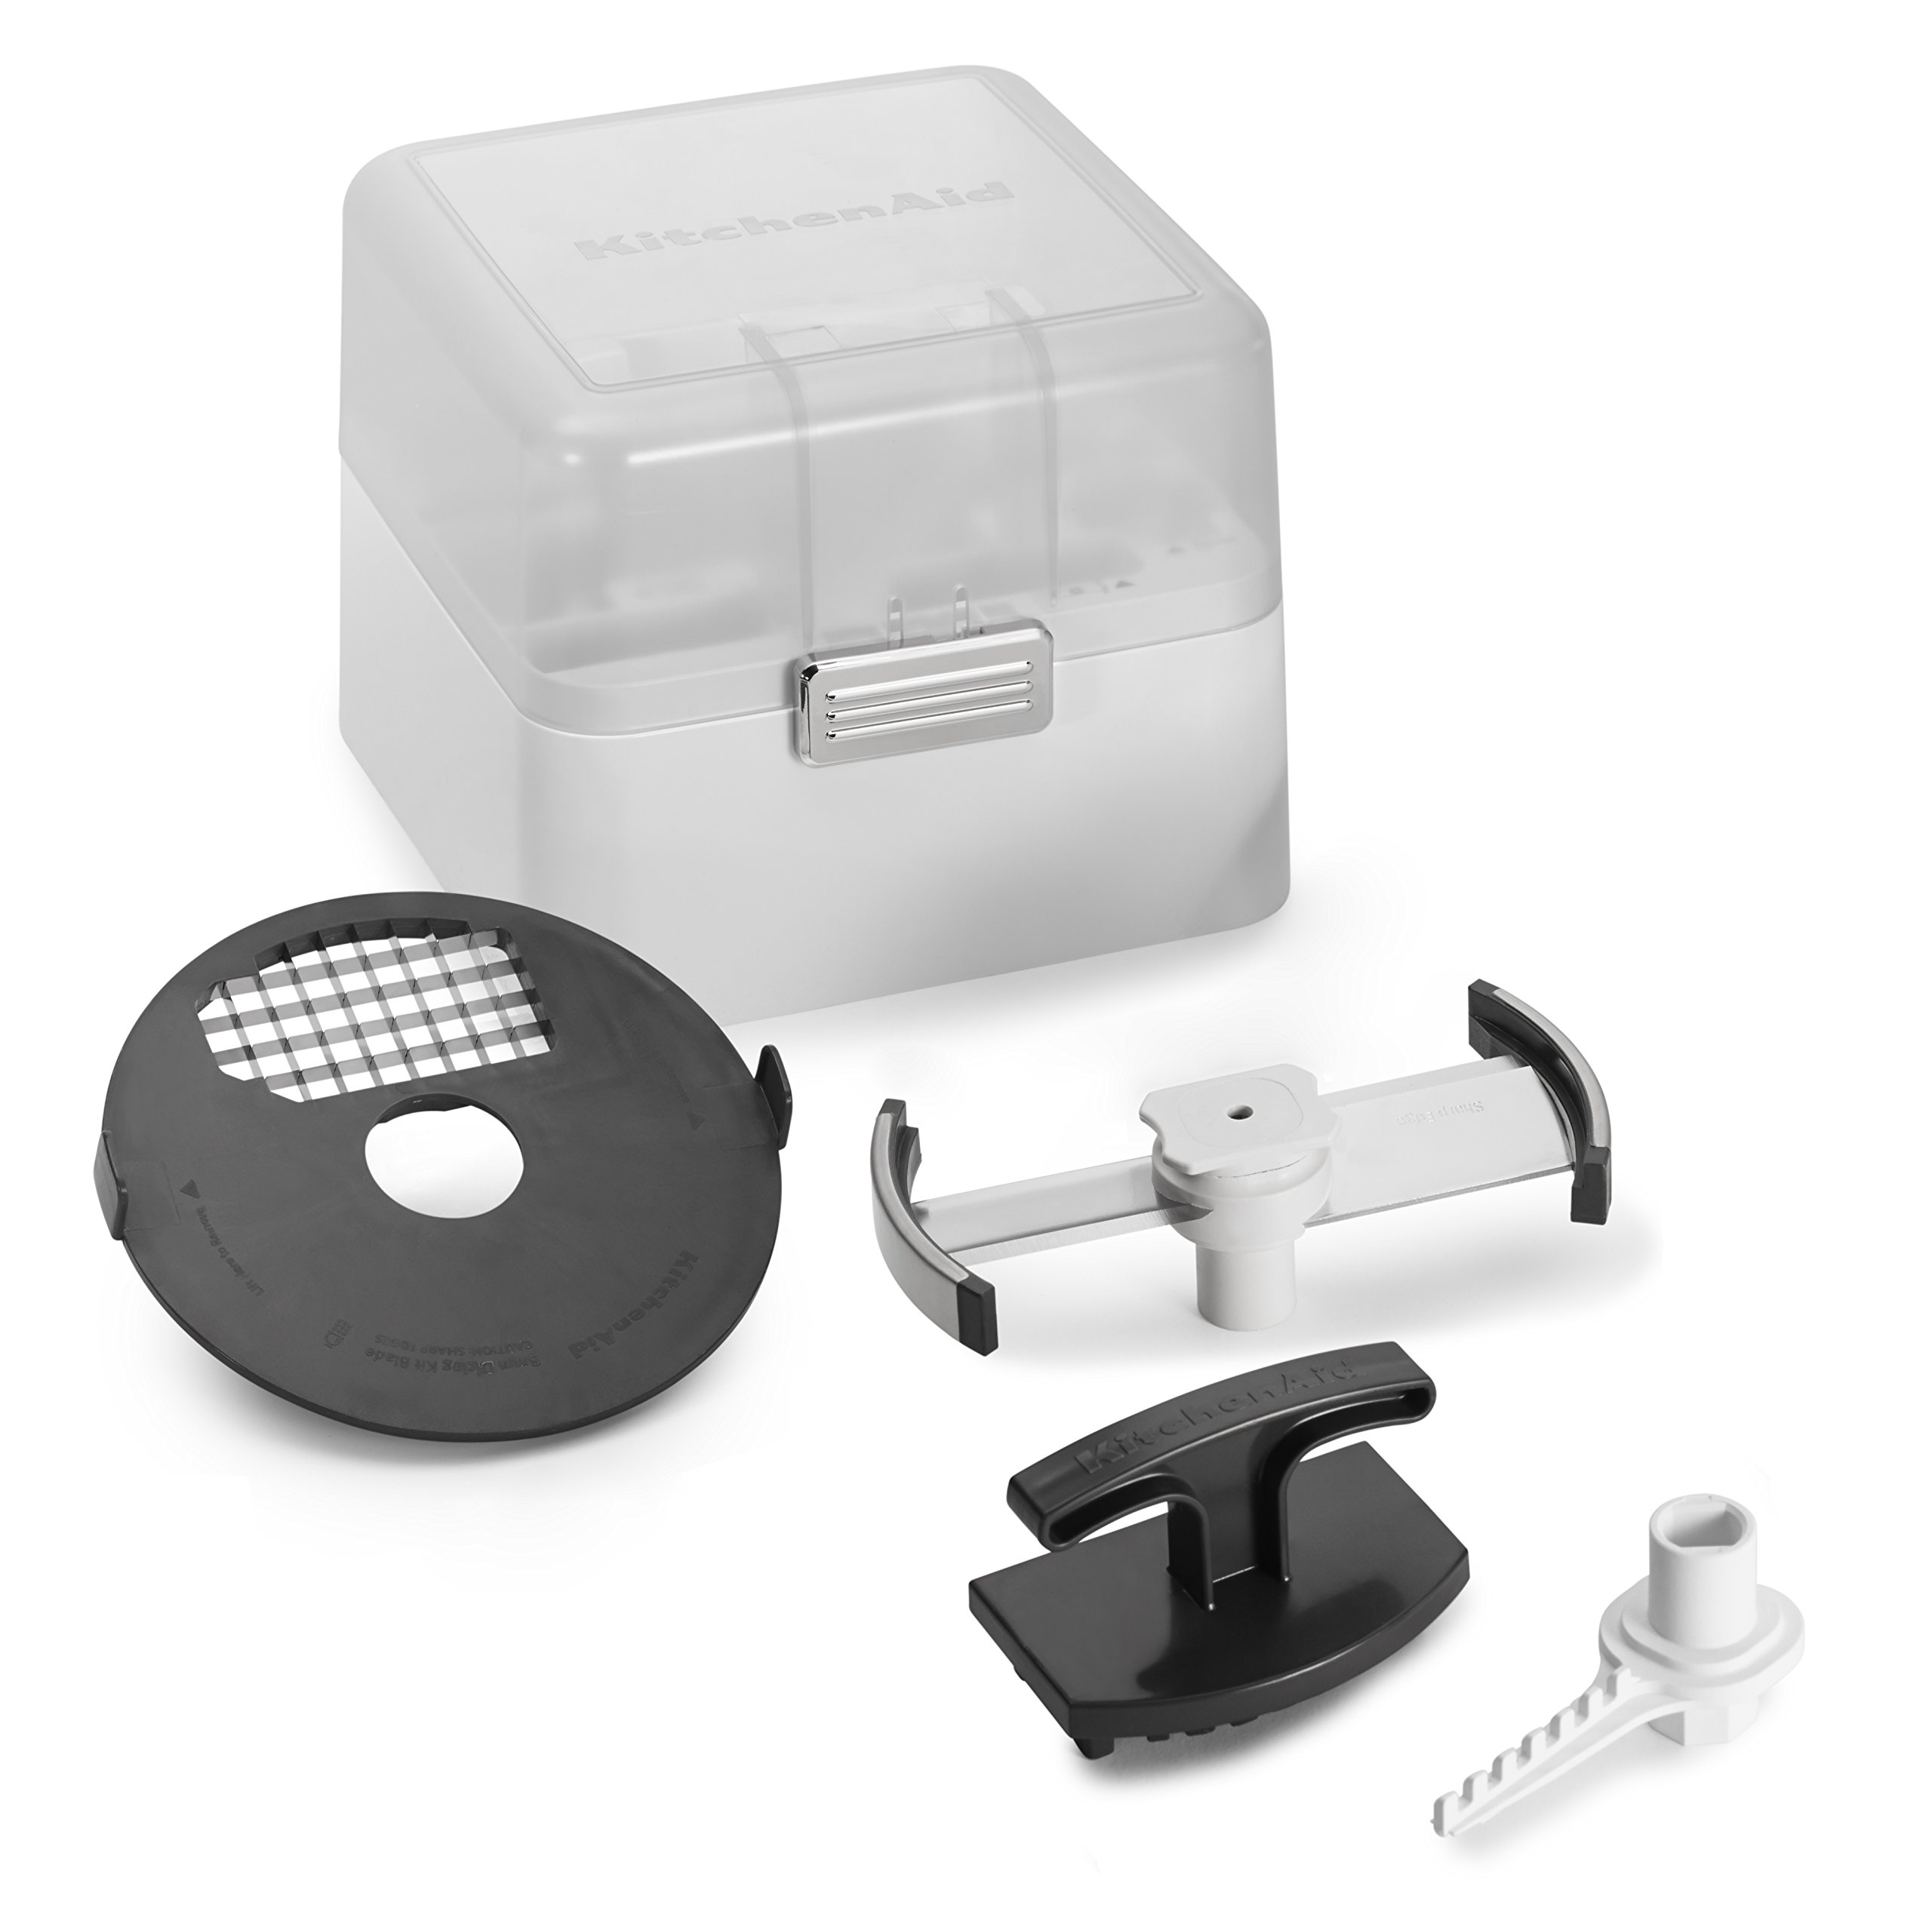 Best Rated In Food Processor Parts Amp Accessories Amp Helpful Customer Reviews Amazon Com